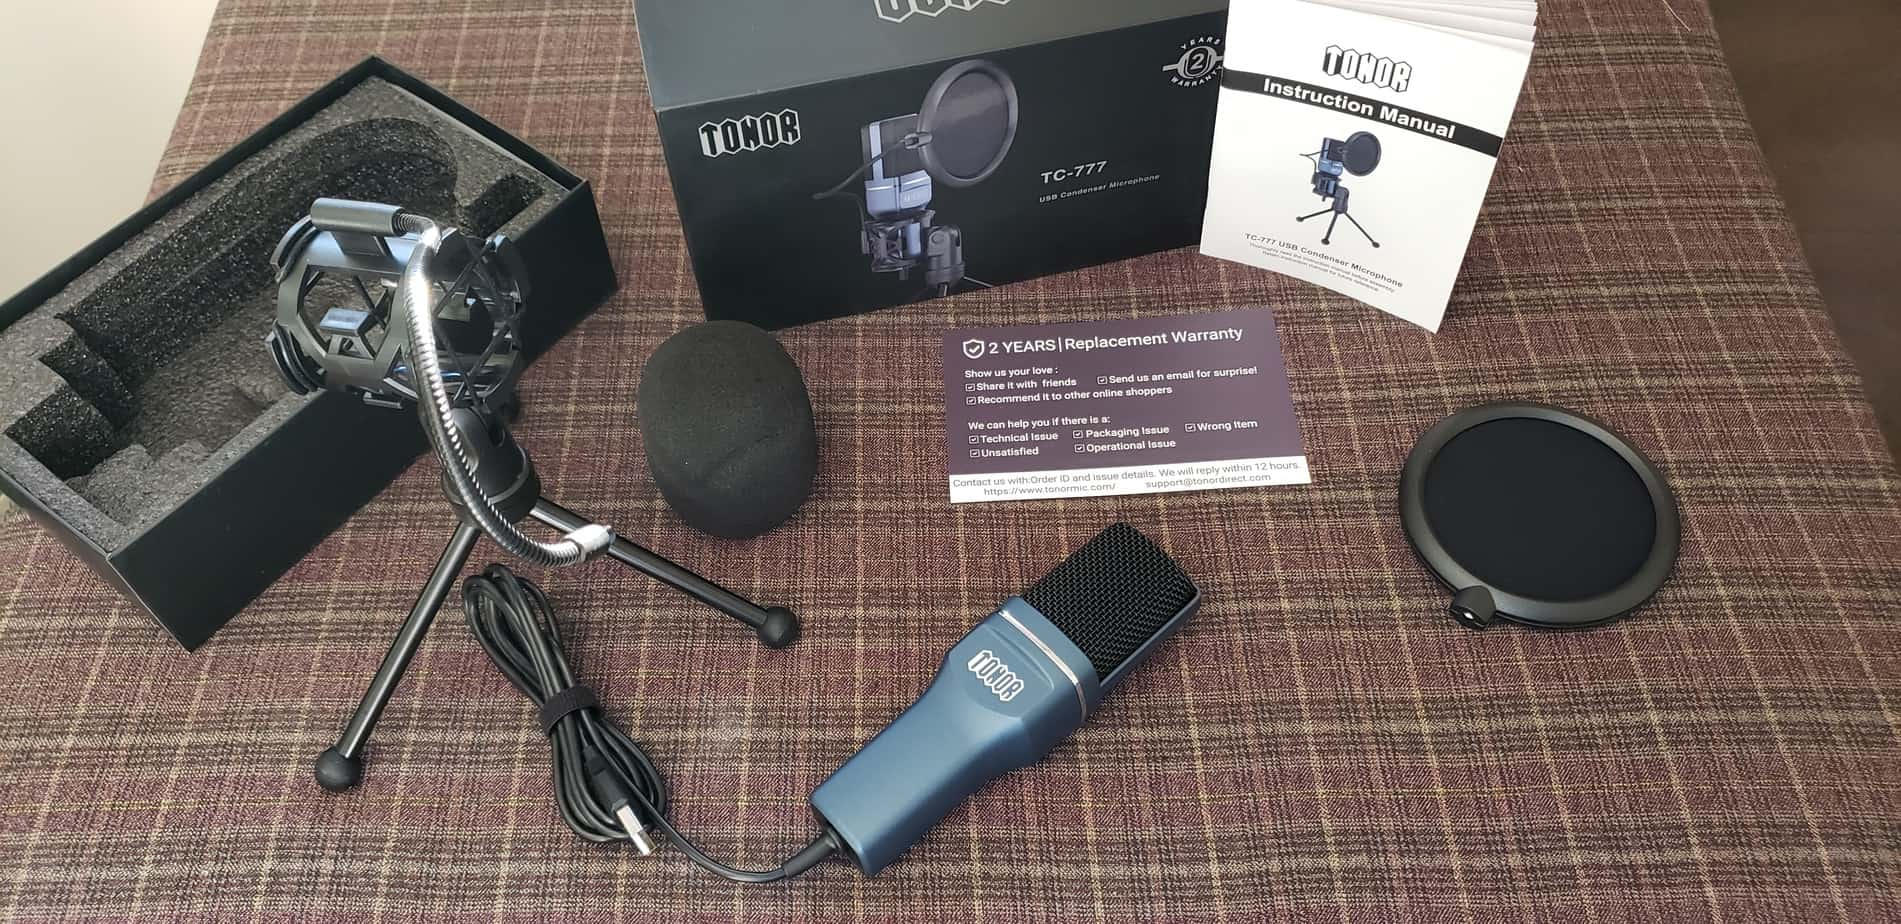 Tonor Microphone - TC-777 Whats Included